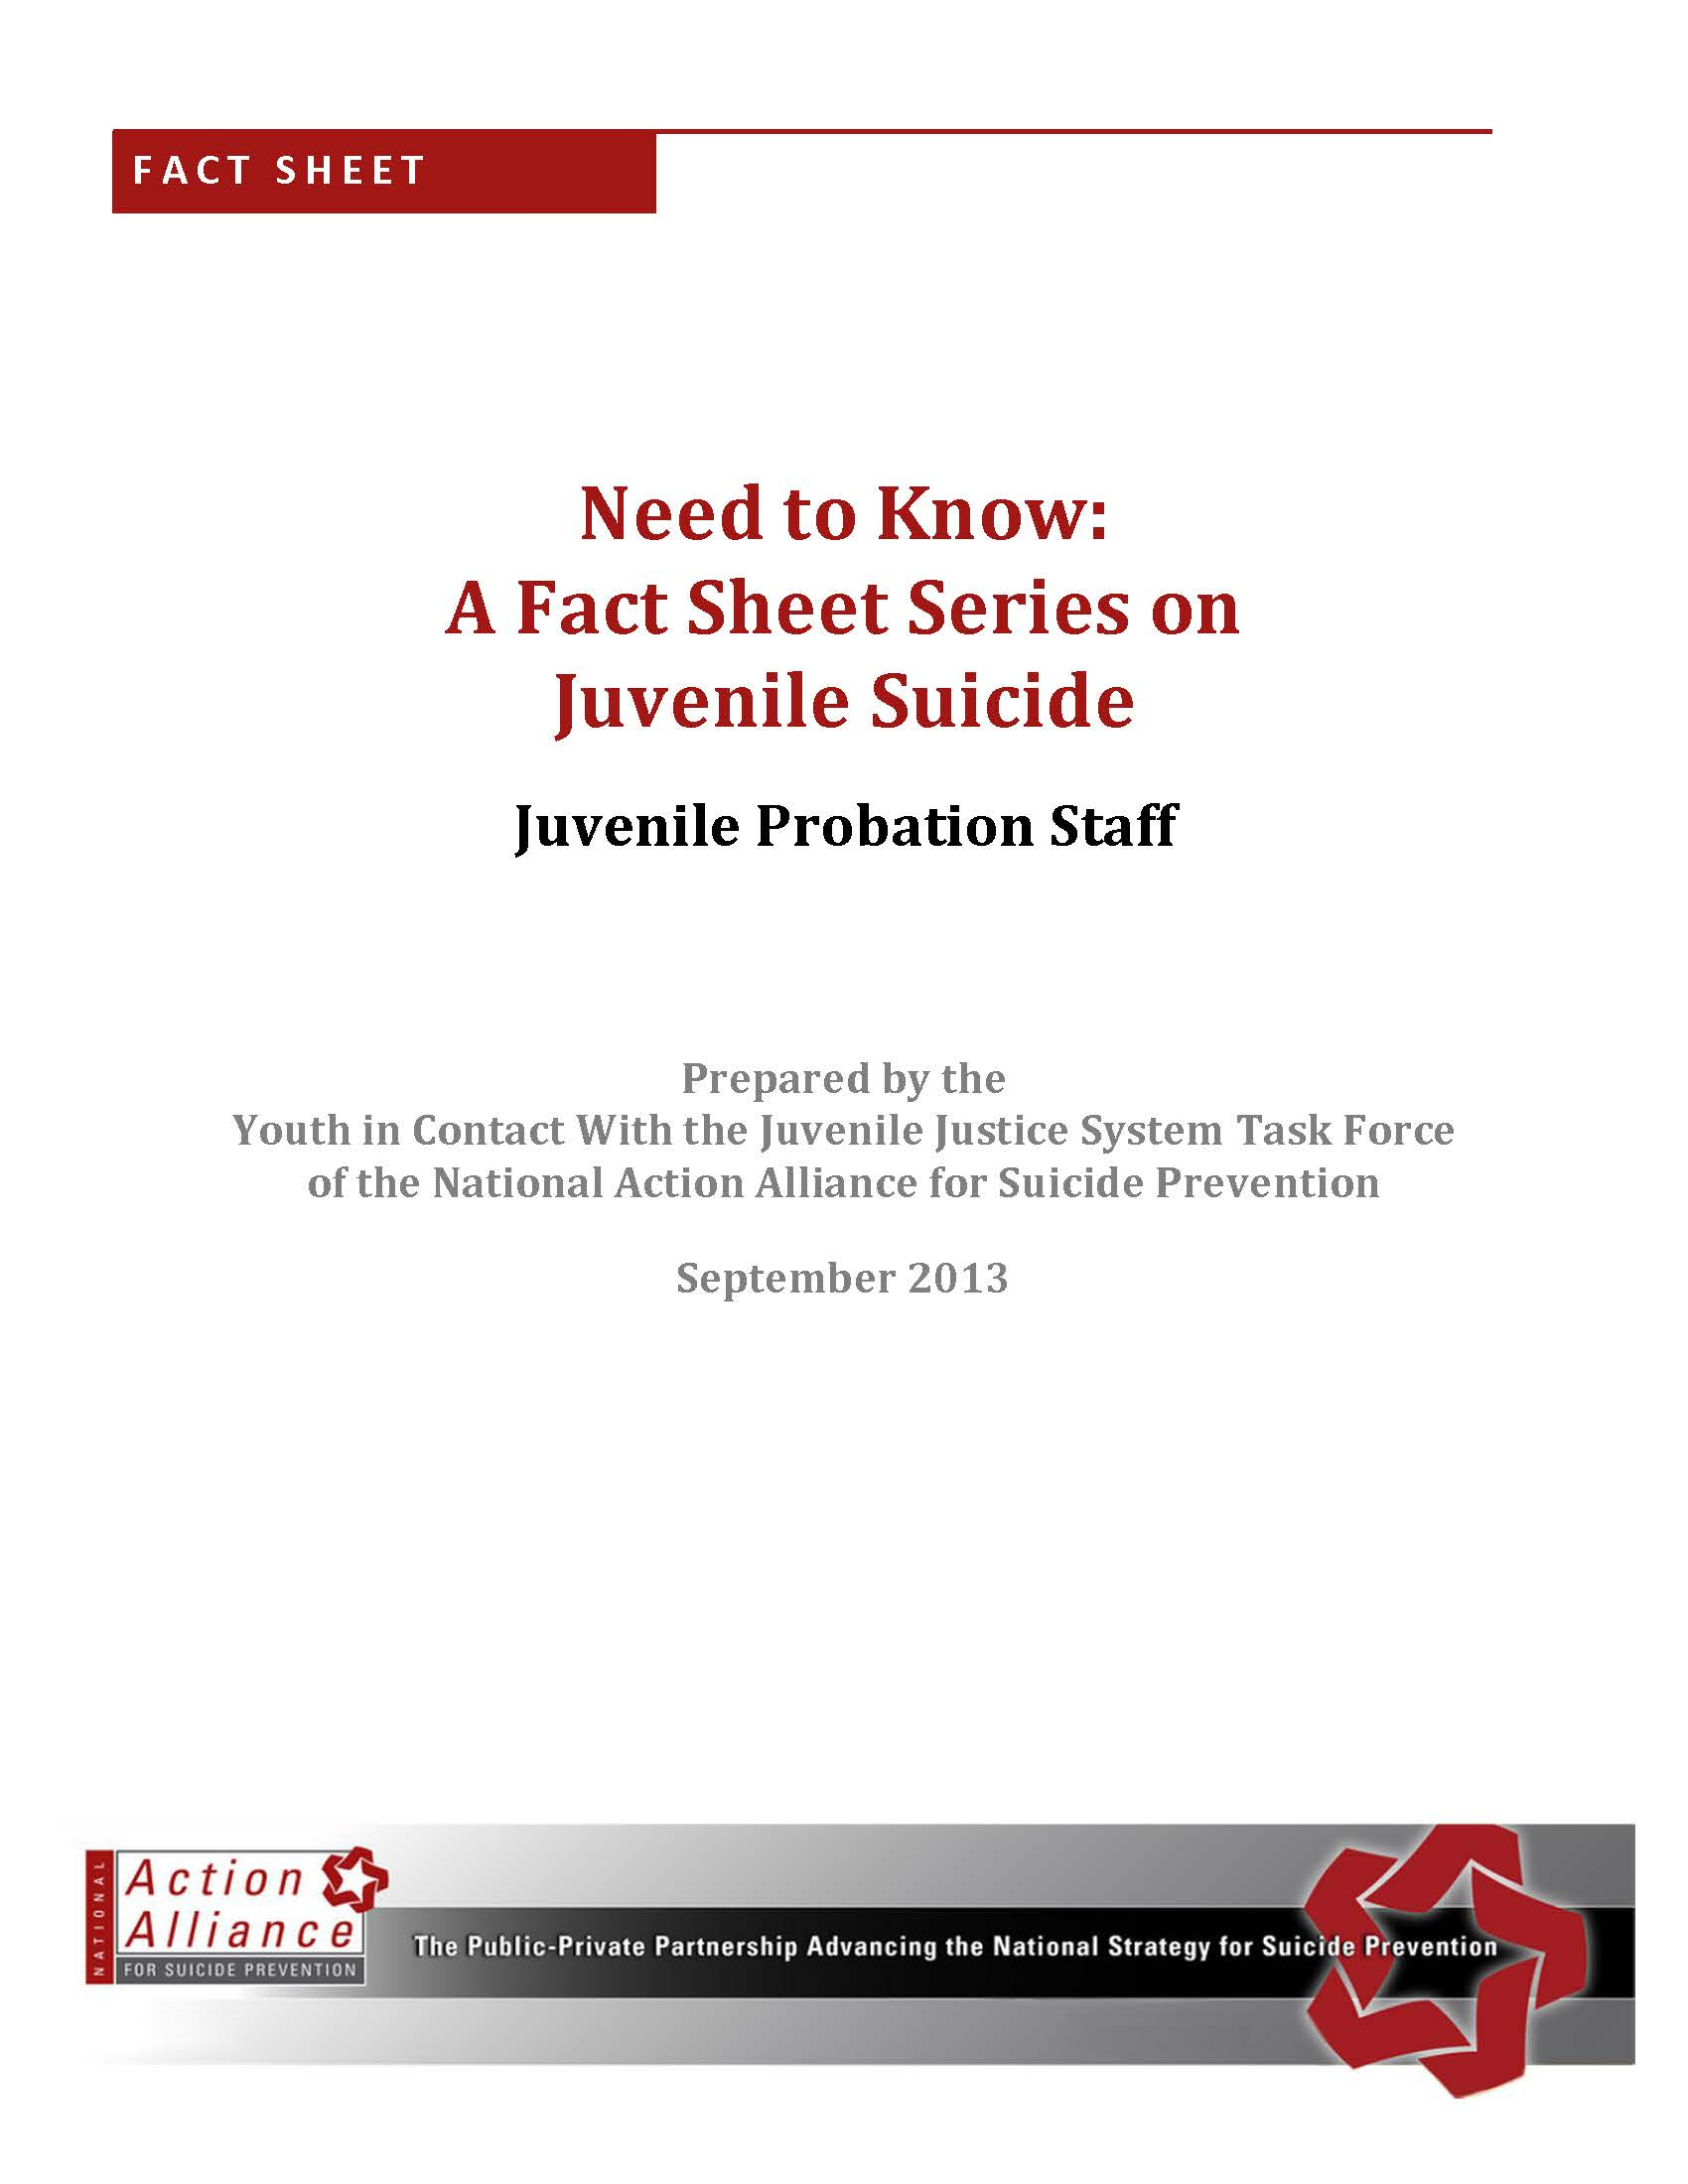 Need to Know: A Fact Sheet Series on Juvenile Justice for Juvenile Probation Staff